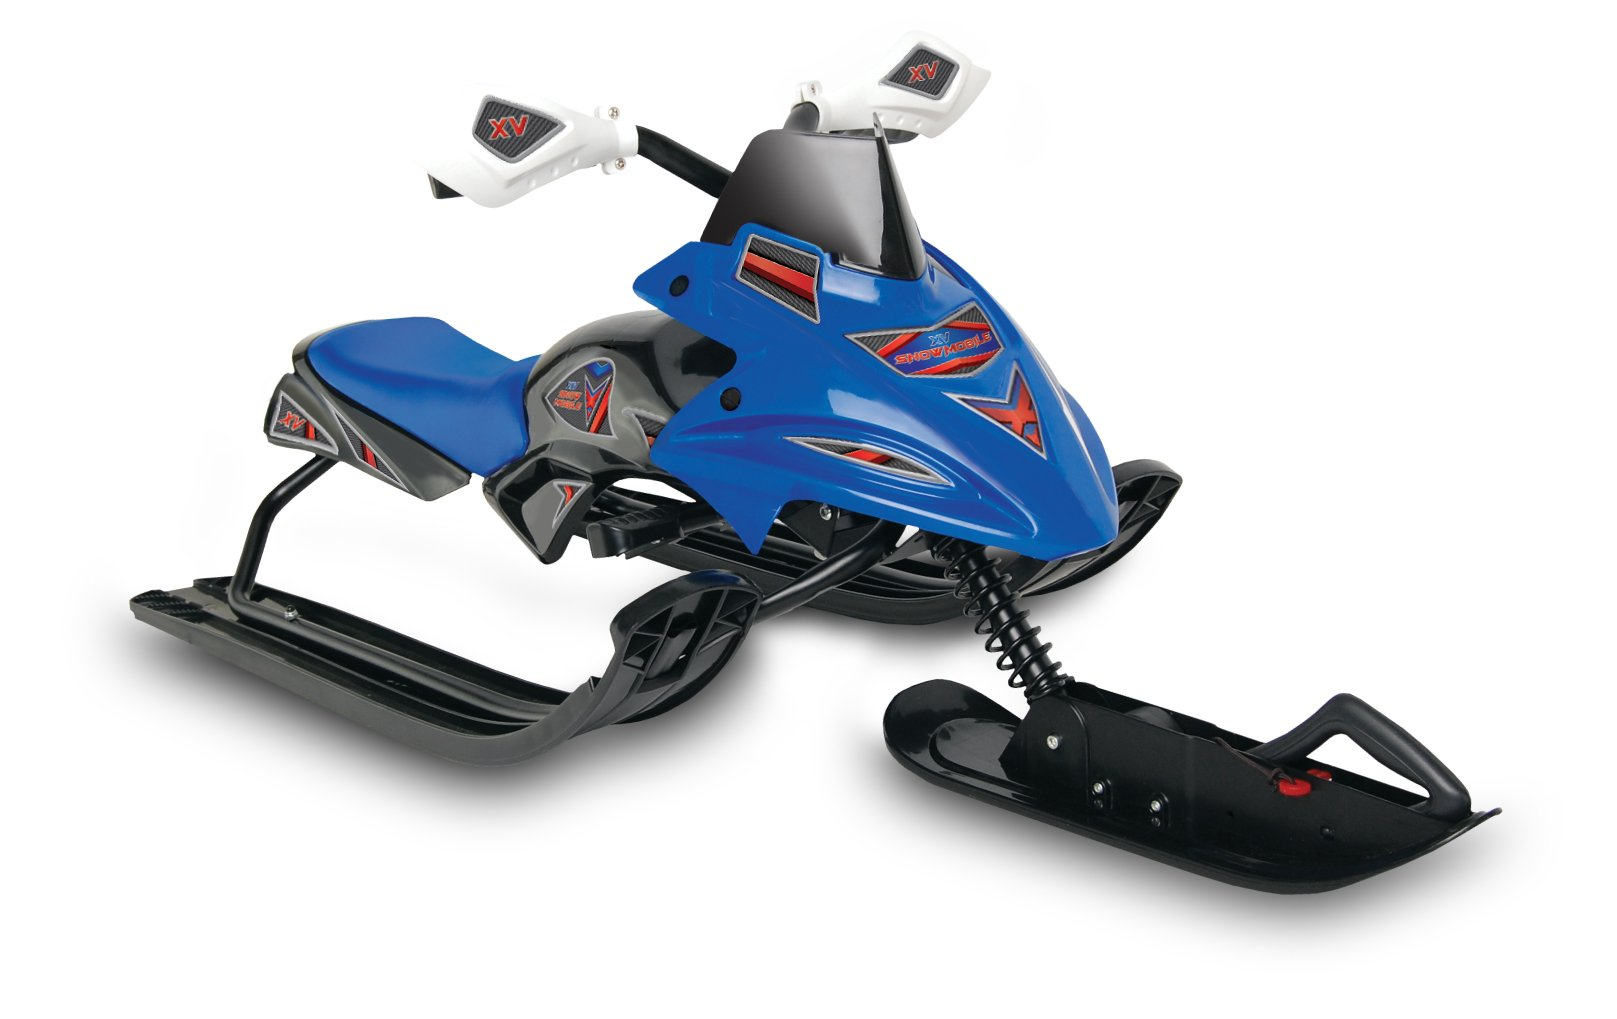 Boyz Toys Winter Xv Snow Mobile by Boyz Toys